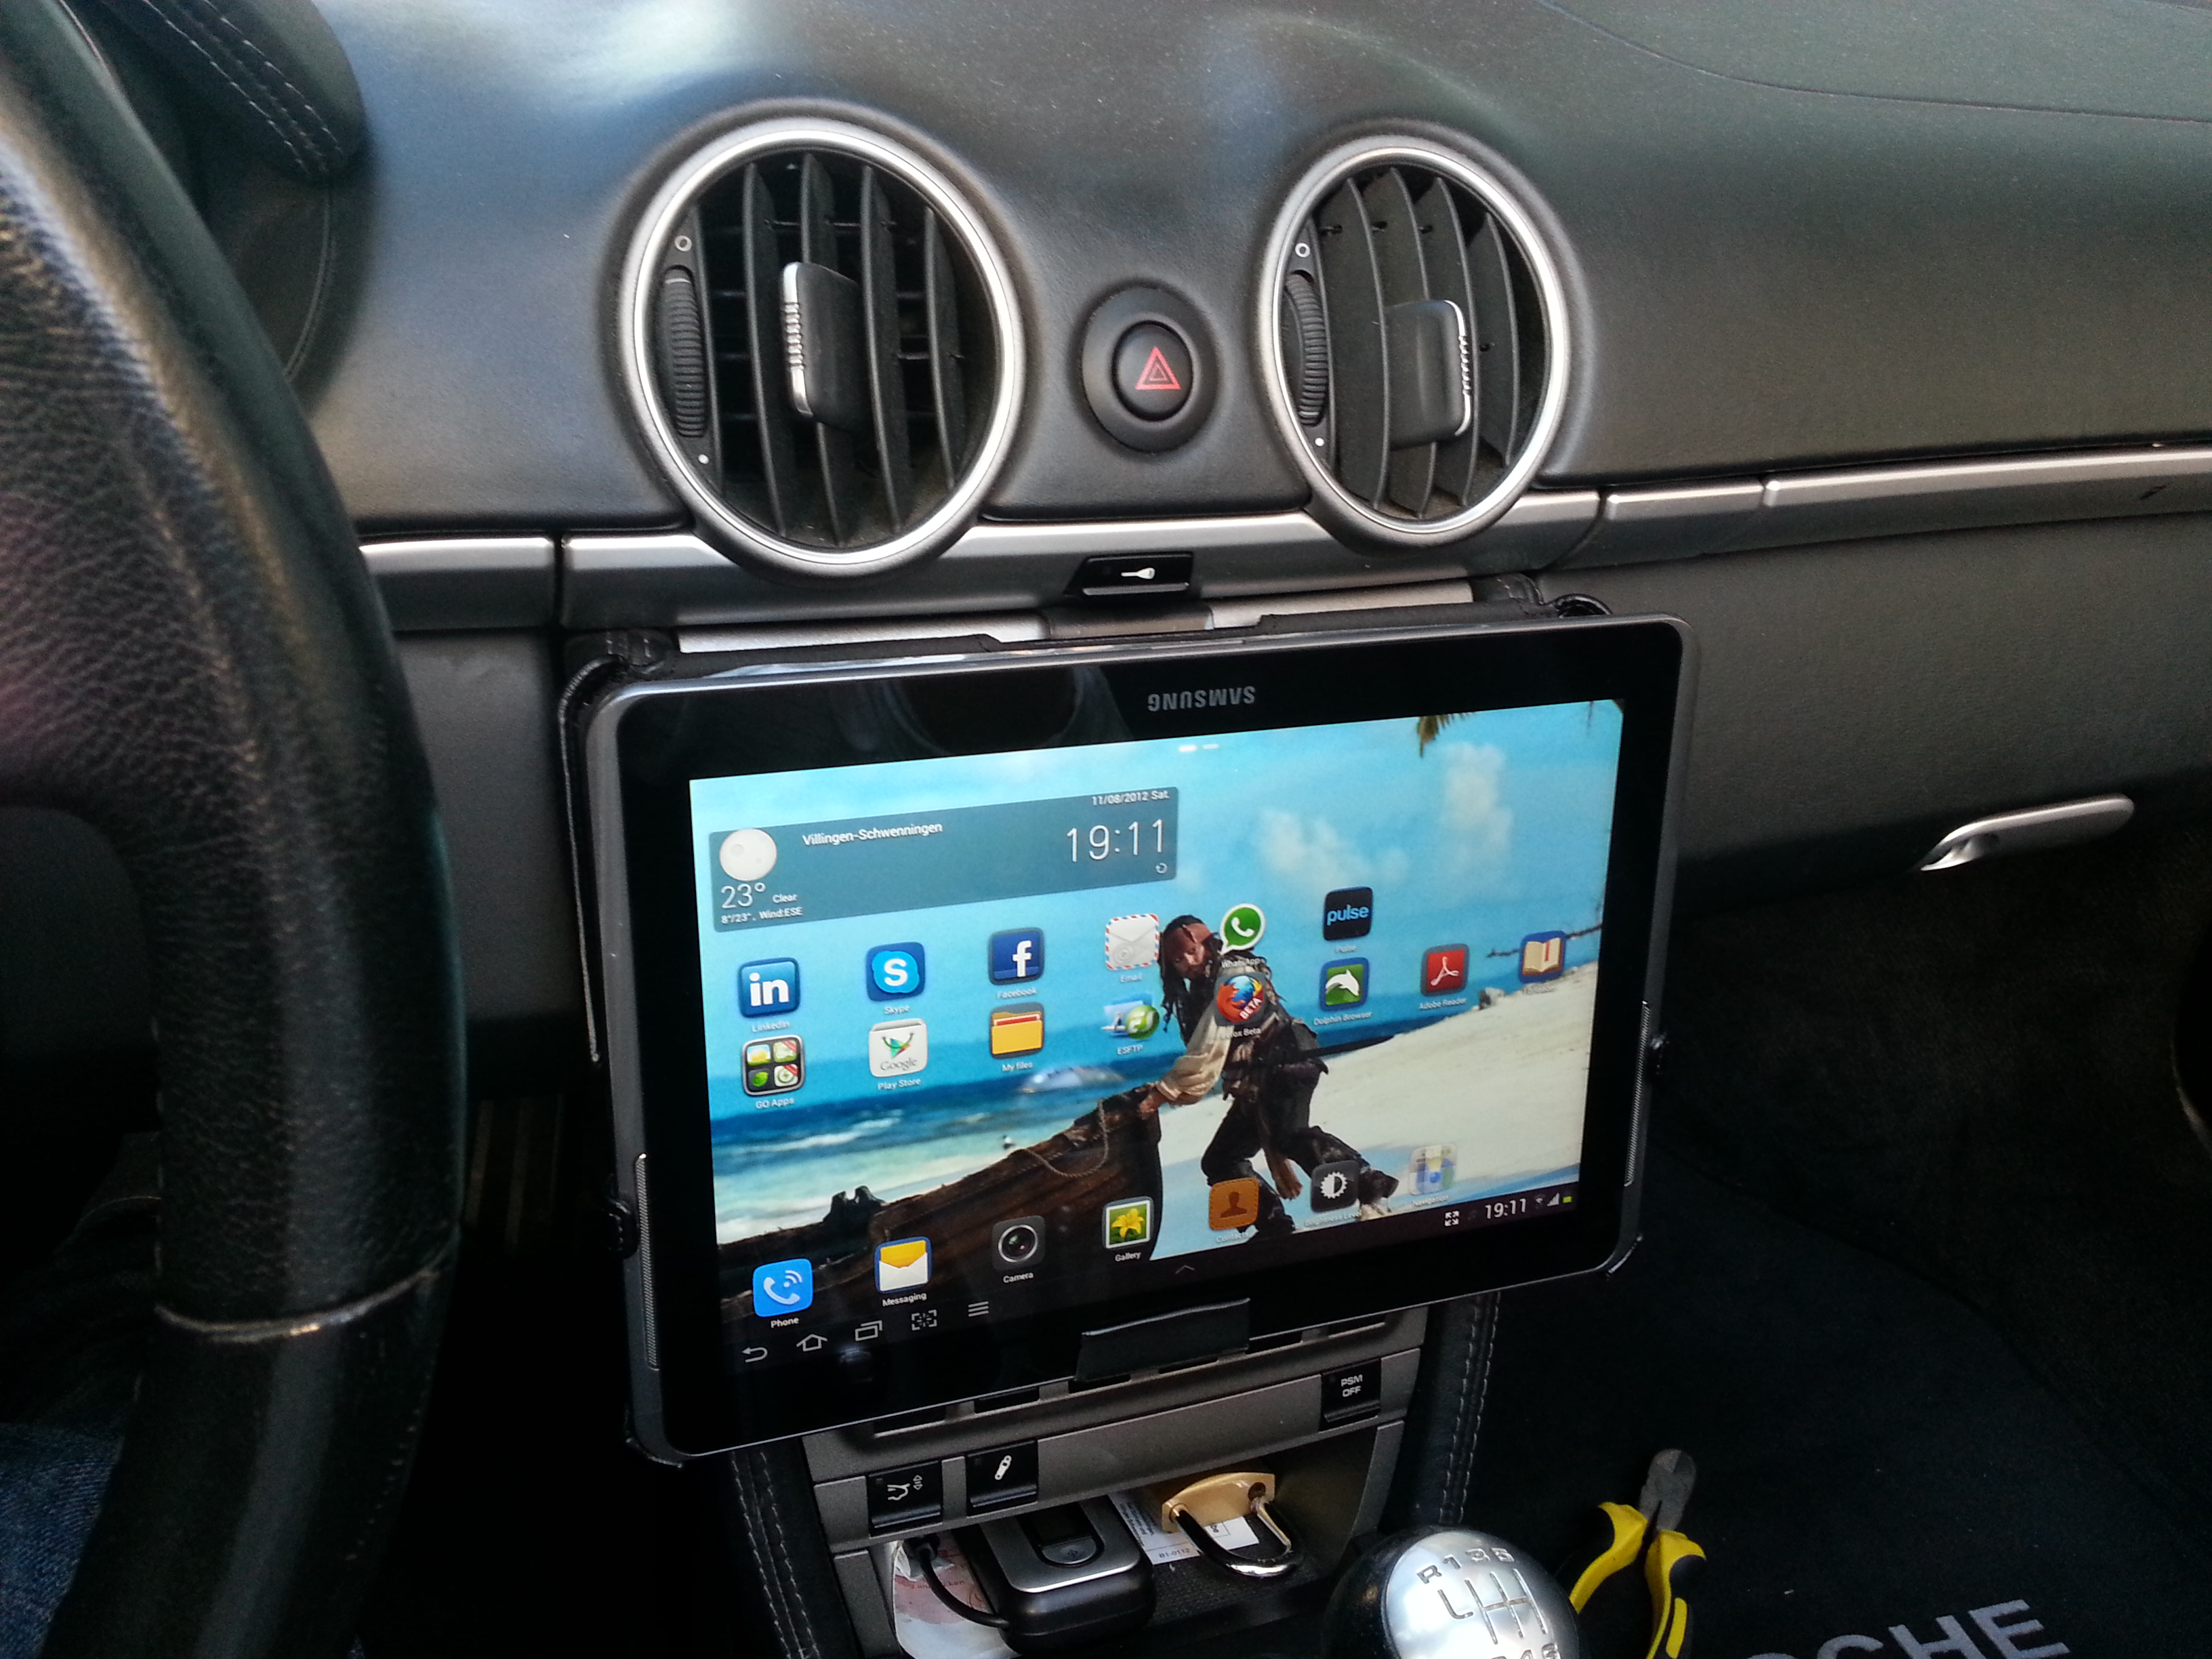 Picture of Tablet / IPad Removeable Car Mount for $1 in 5 Minutes